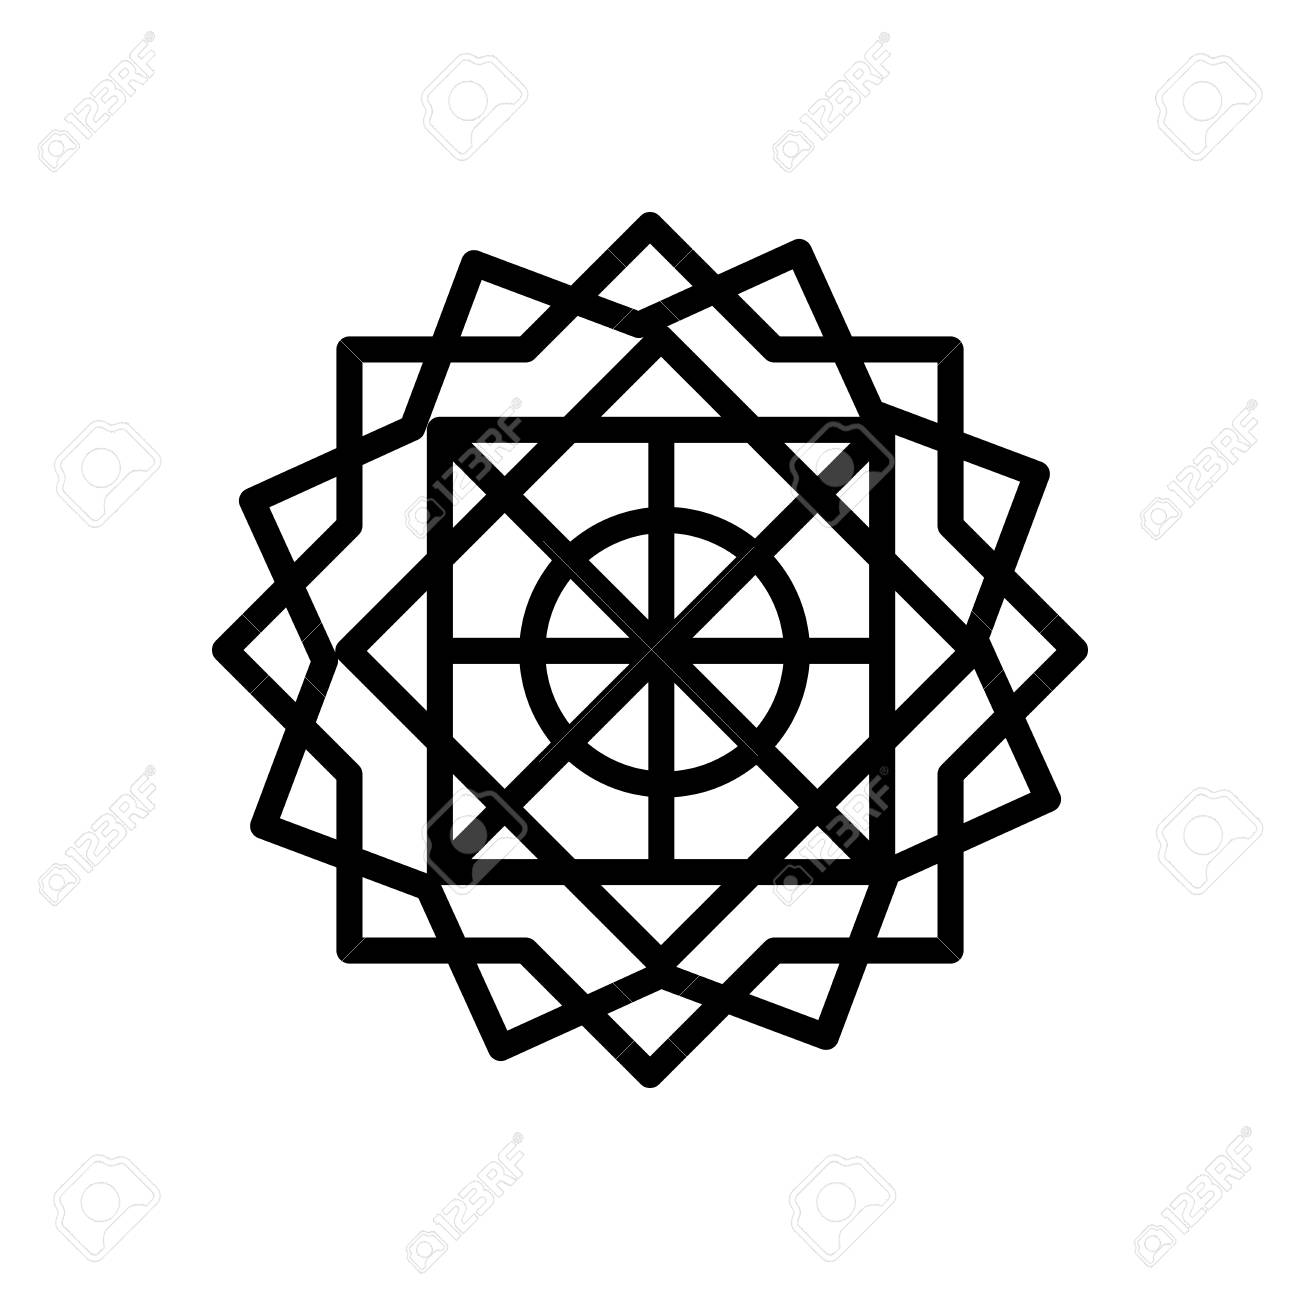 islamic art icon vector isolated on white background islamic royalty free cliparts vectors and stock illustration image 107931512 islamic art icon vector isolated on white background islamic